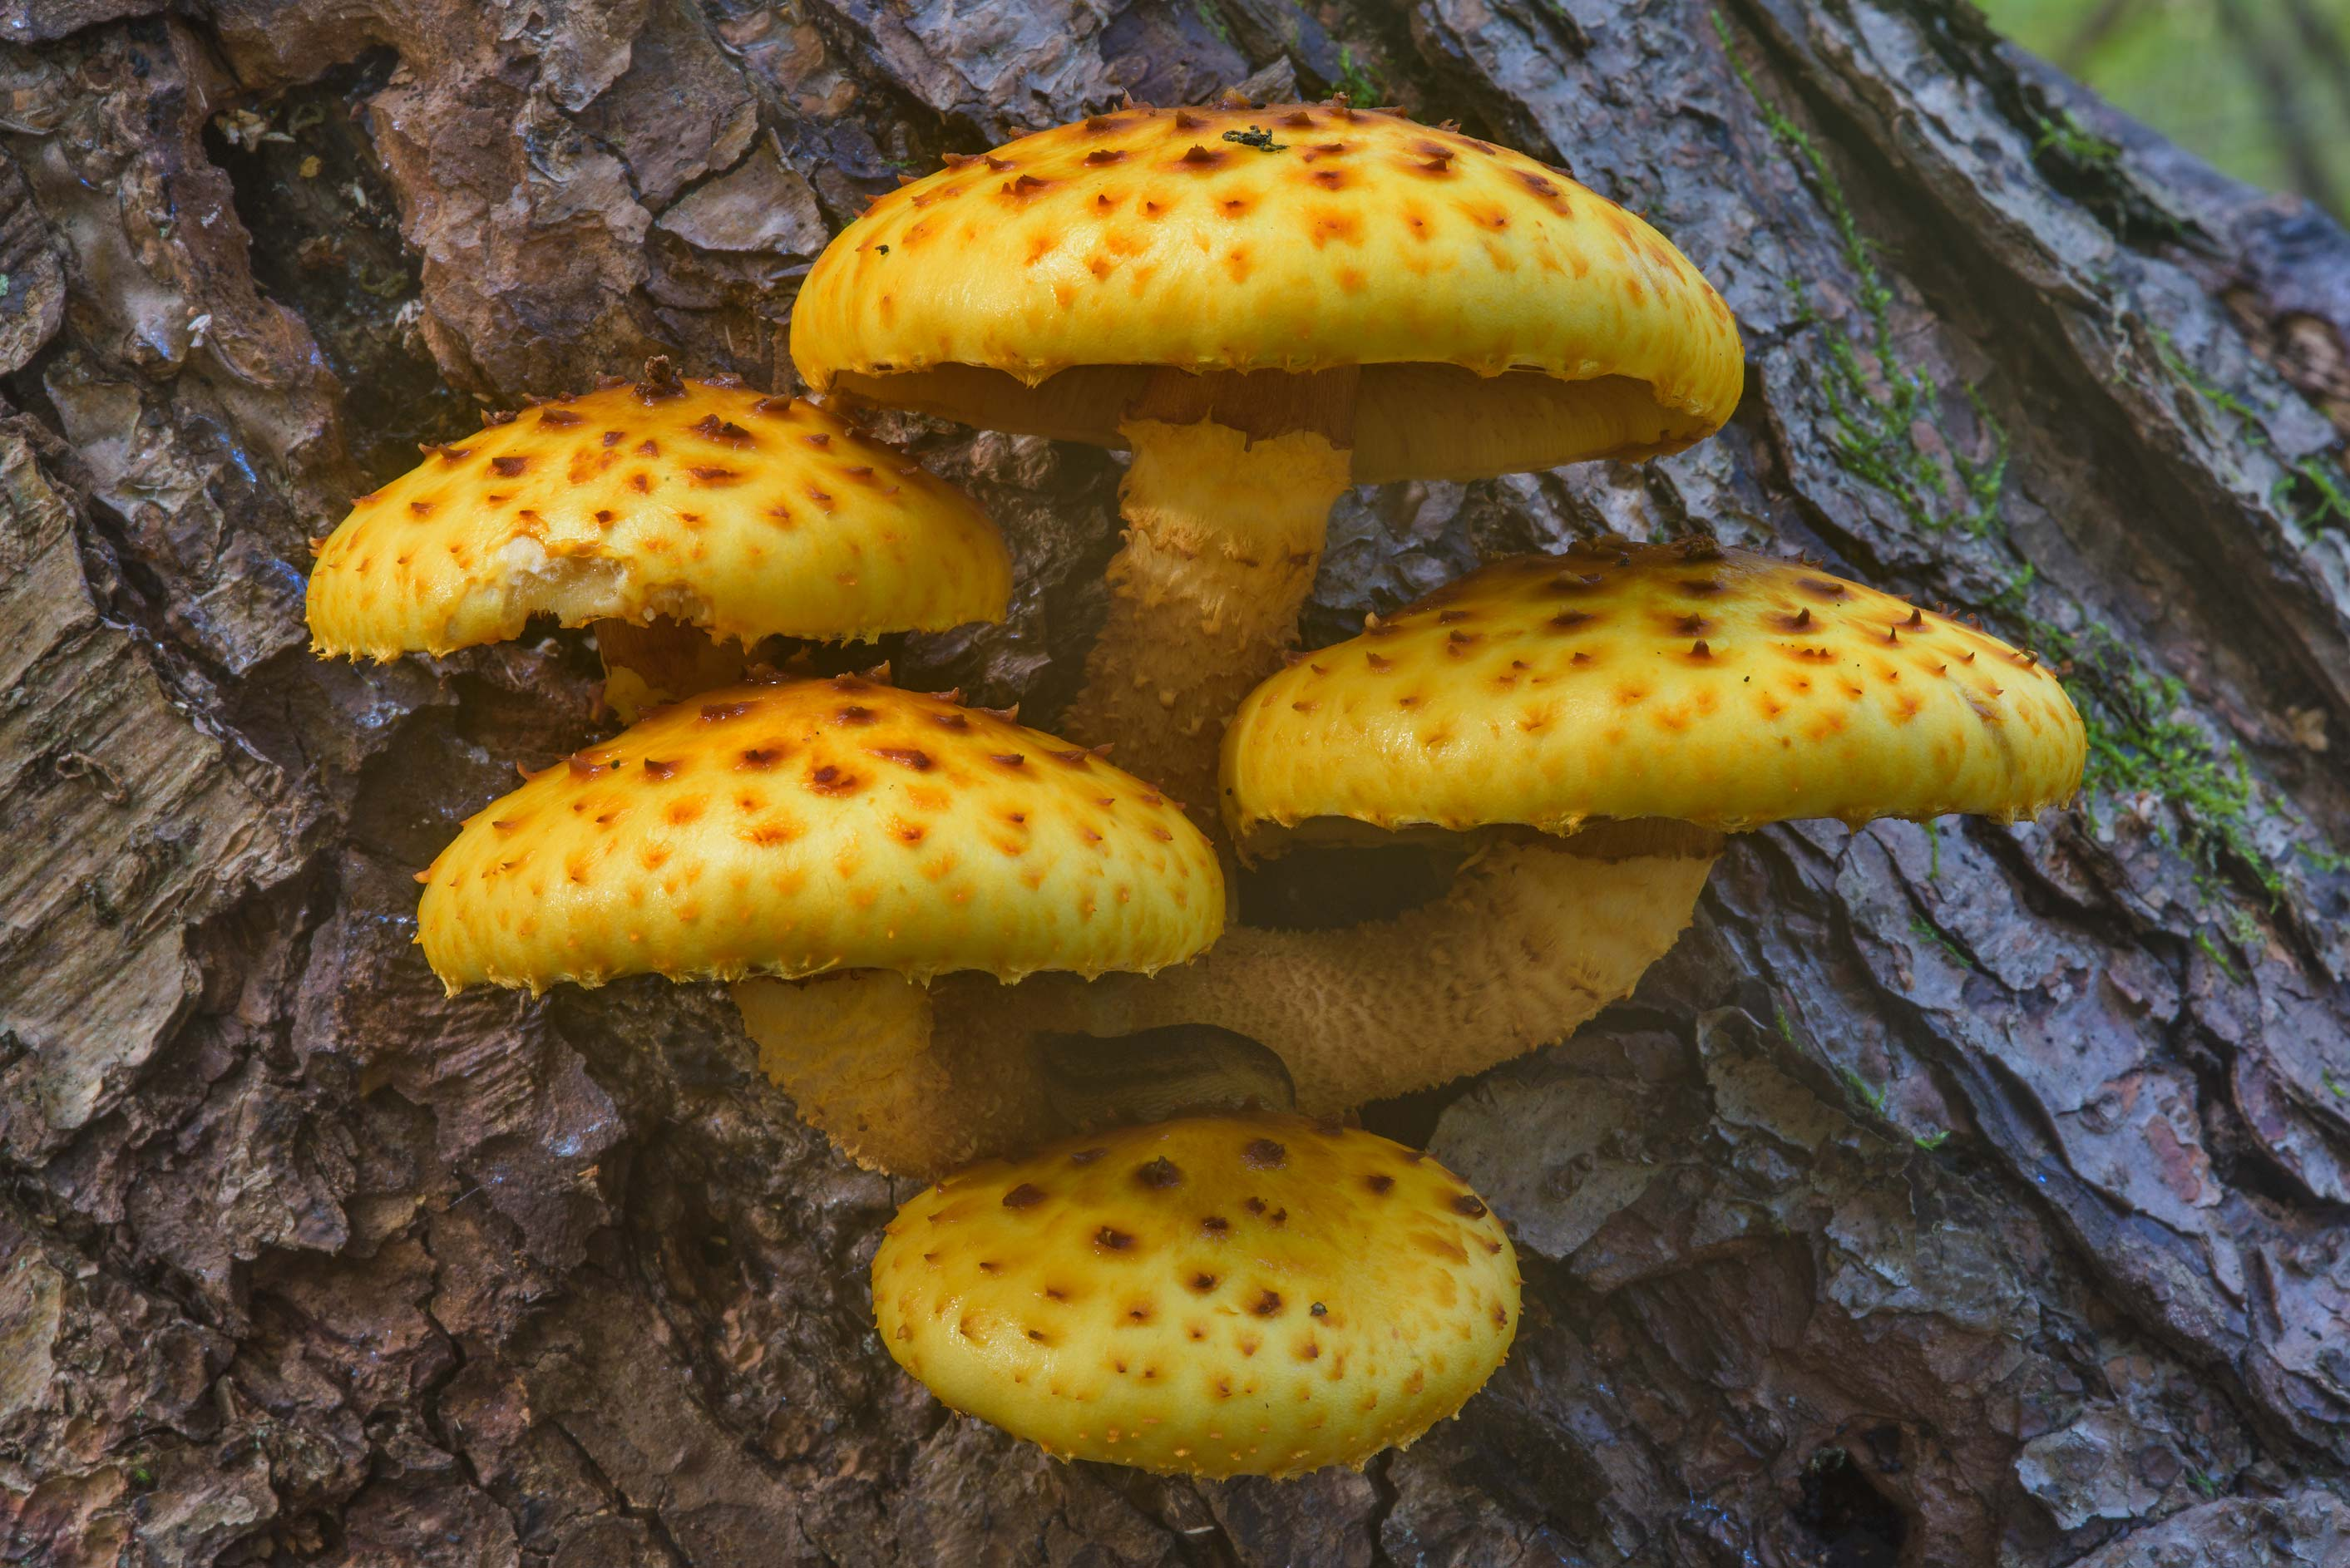 Golden scalycap mushrooms (Pholiota aurivella...Nos, west from St.Petersburg. Russia